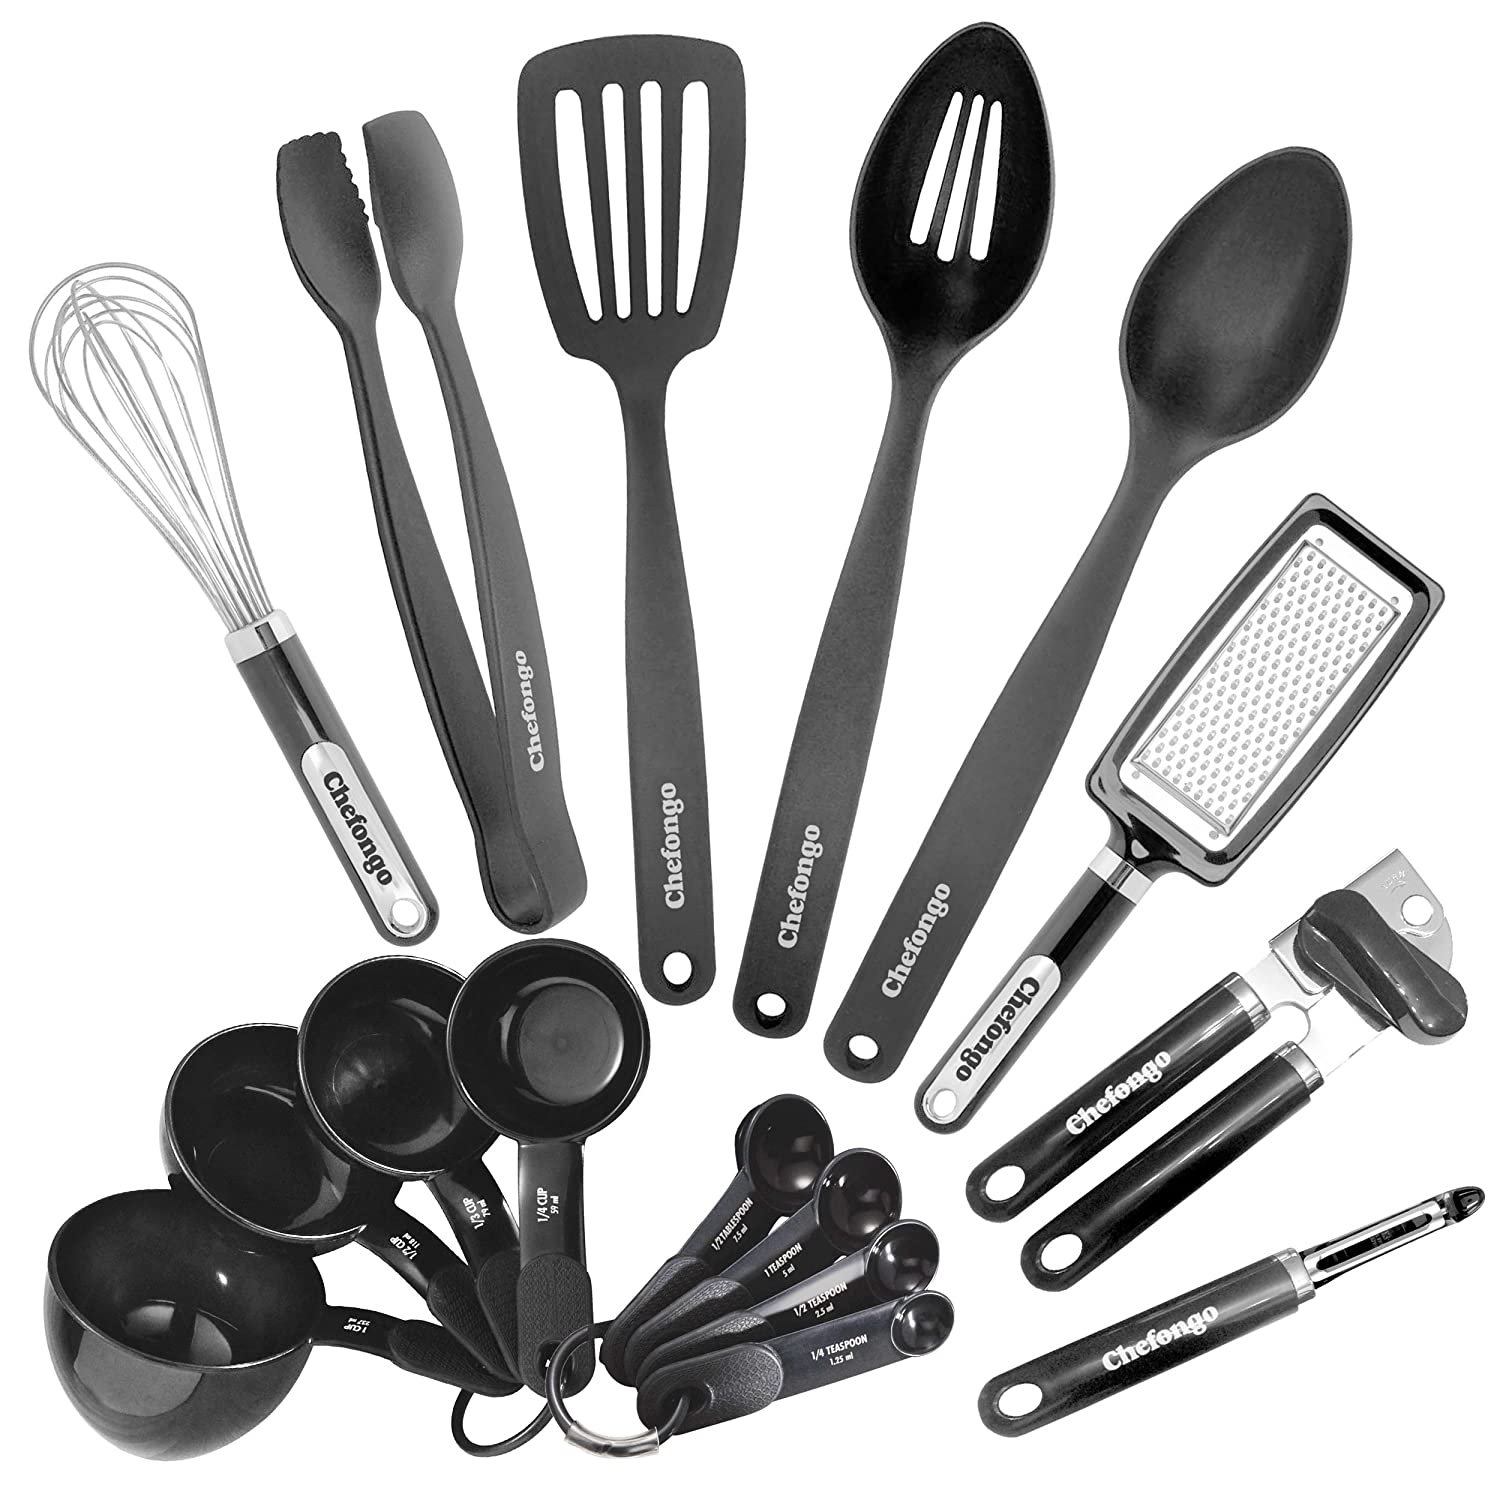 Kitchen Gadgets and Tools - 16 Piece Home Starter Set By Chefongo (Black)